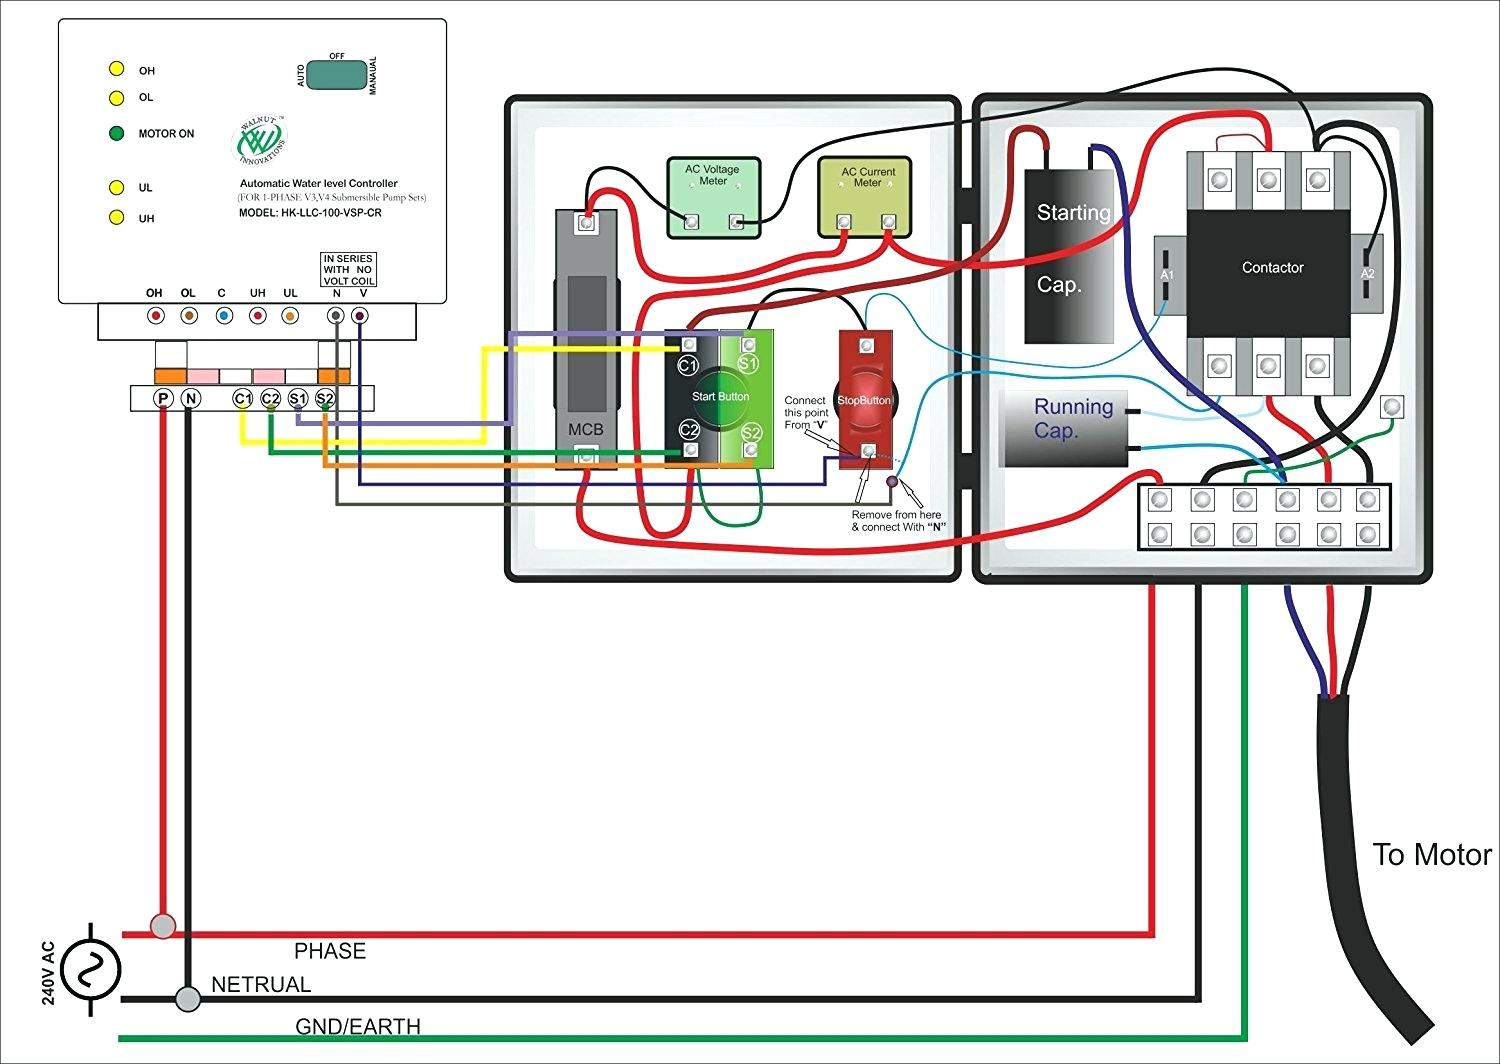 hight resolution of 3 wire pump controller diagram wiring diagram list 3 phase submersible pump control panel wiring diagram